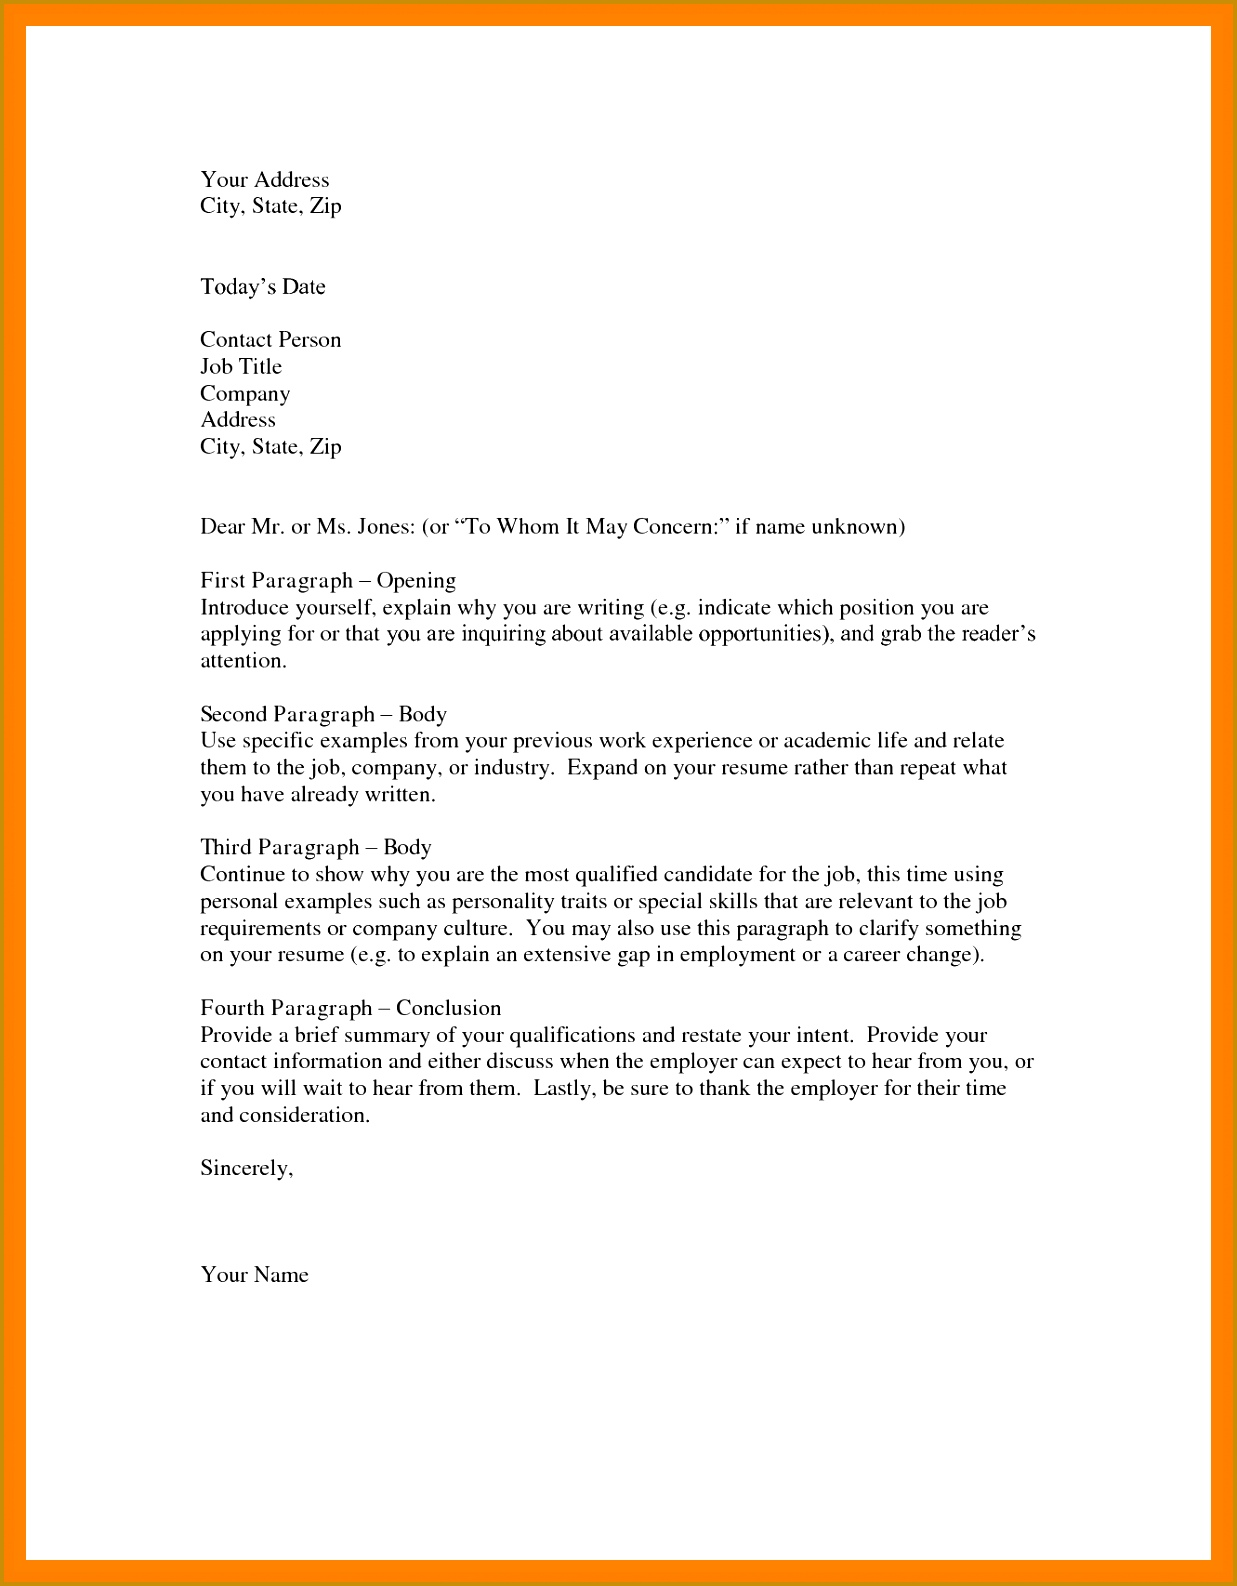 How to Turn In Your Resignation Letter Tactfully 12371586